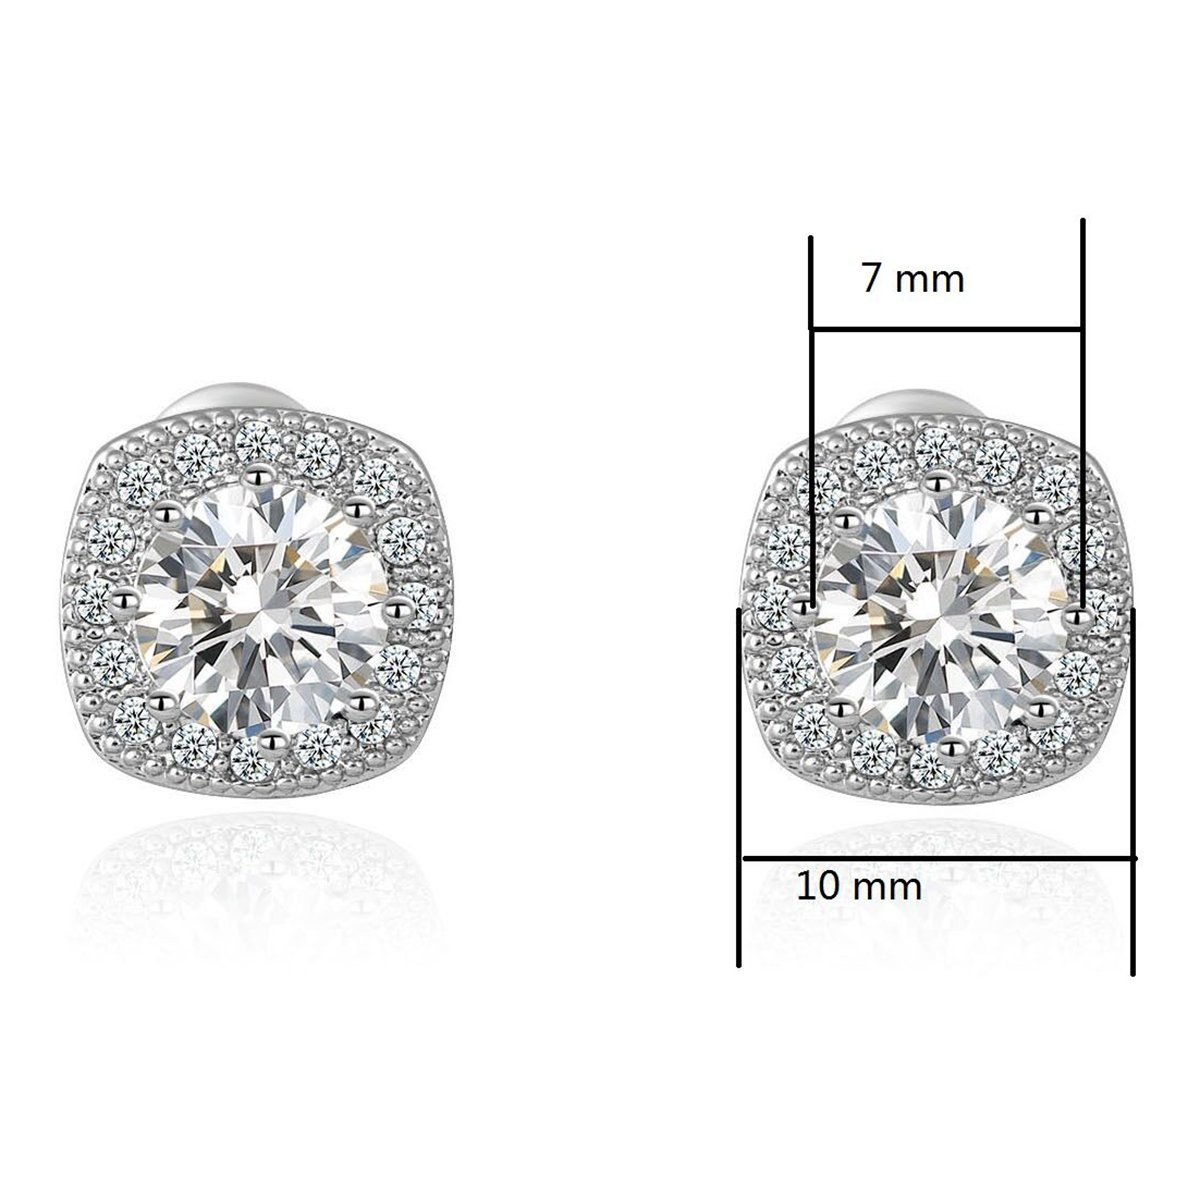 Stud Earrings Earrings for Girls Fashion Jewelry Cubic Zirconia Halo Earrings for Women Men